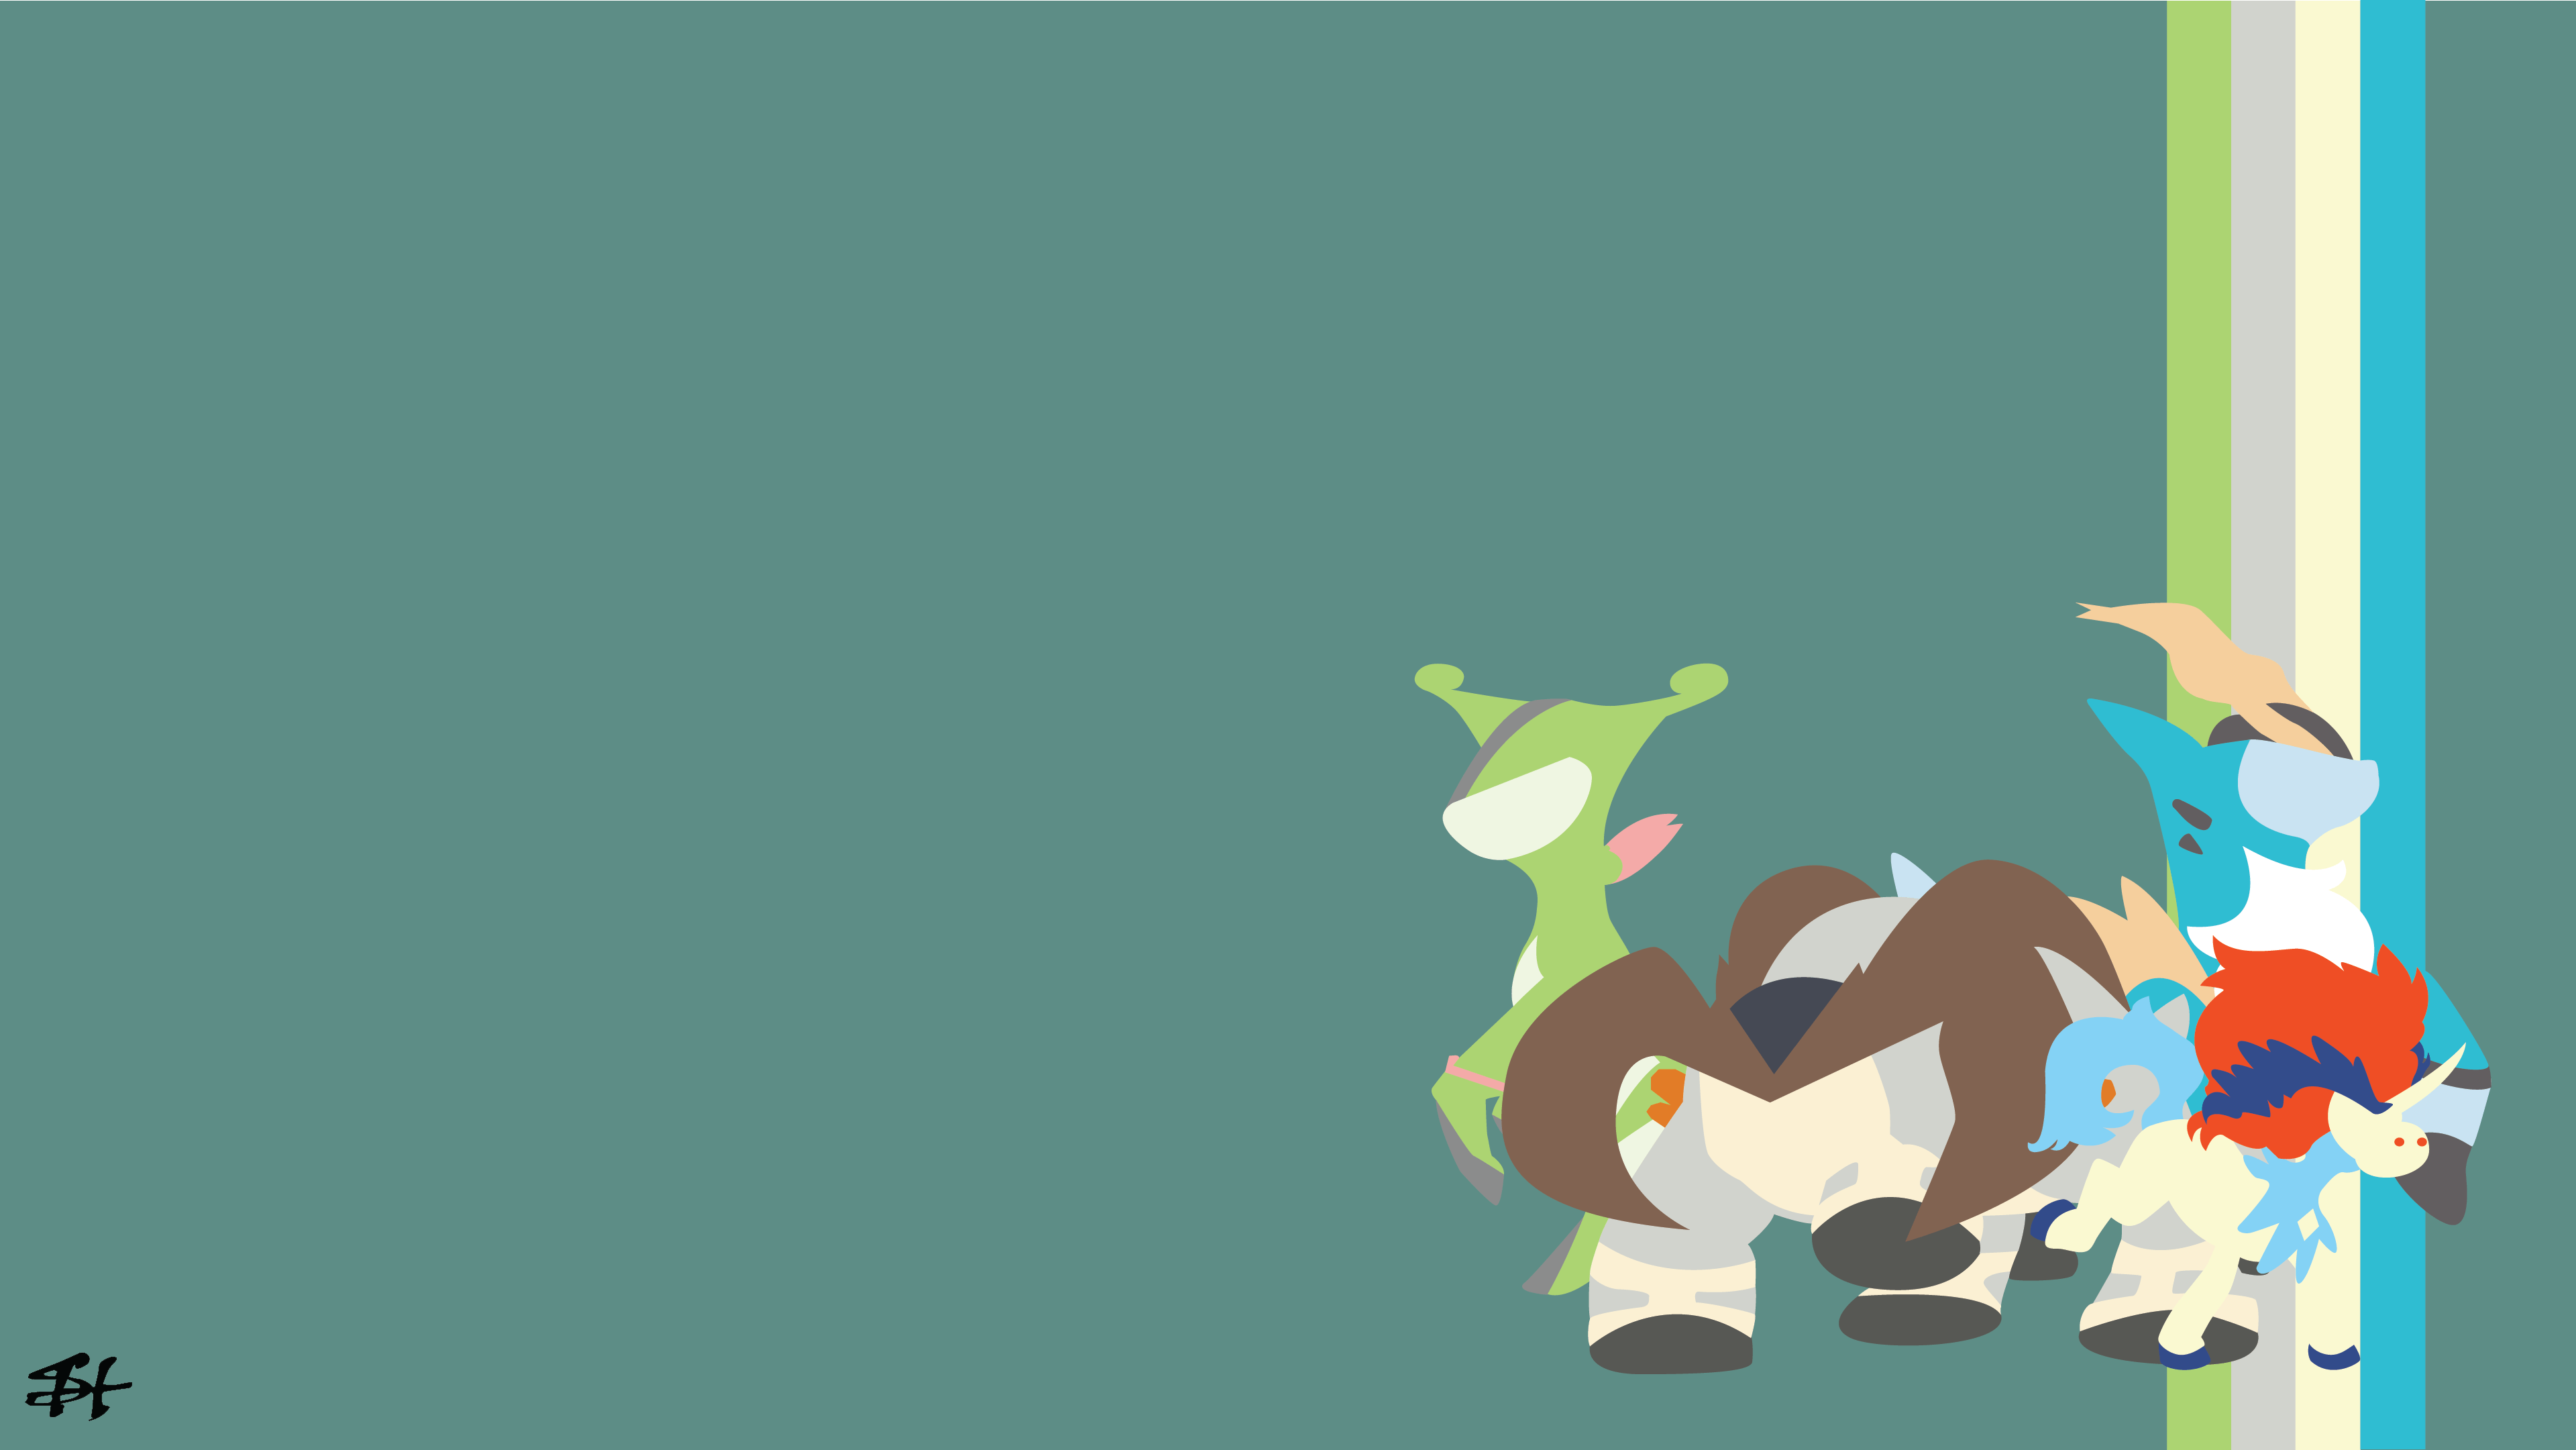 2 Cobalion (Pokémon) HD Wallpapers | Background Images - Wallpaper Abyss